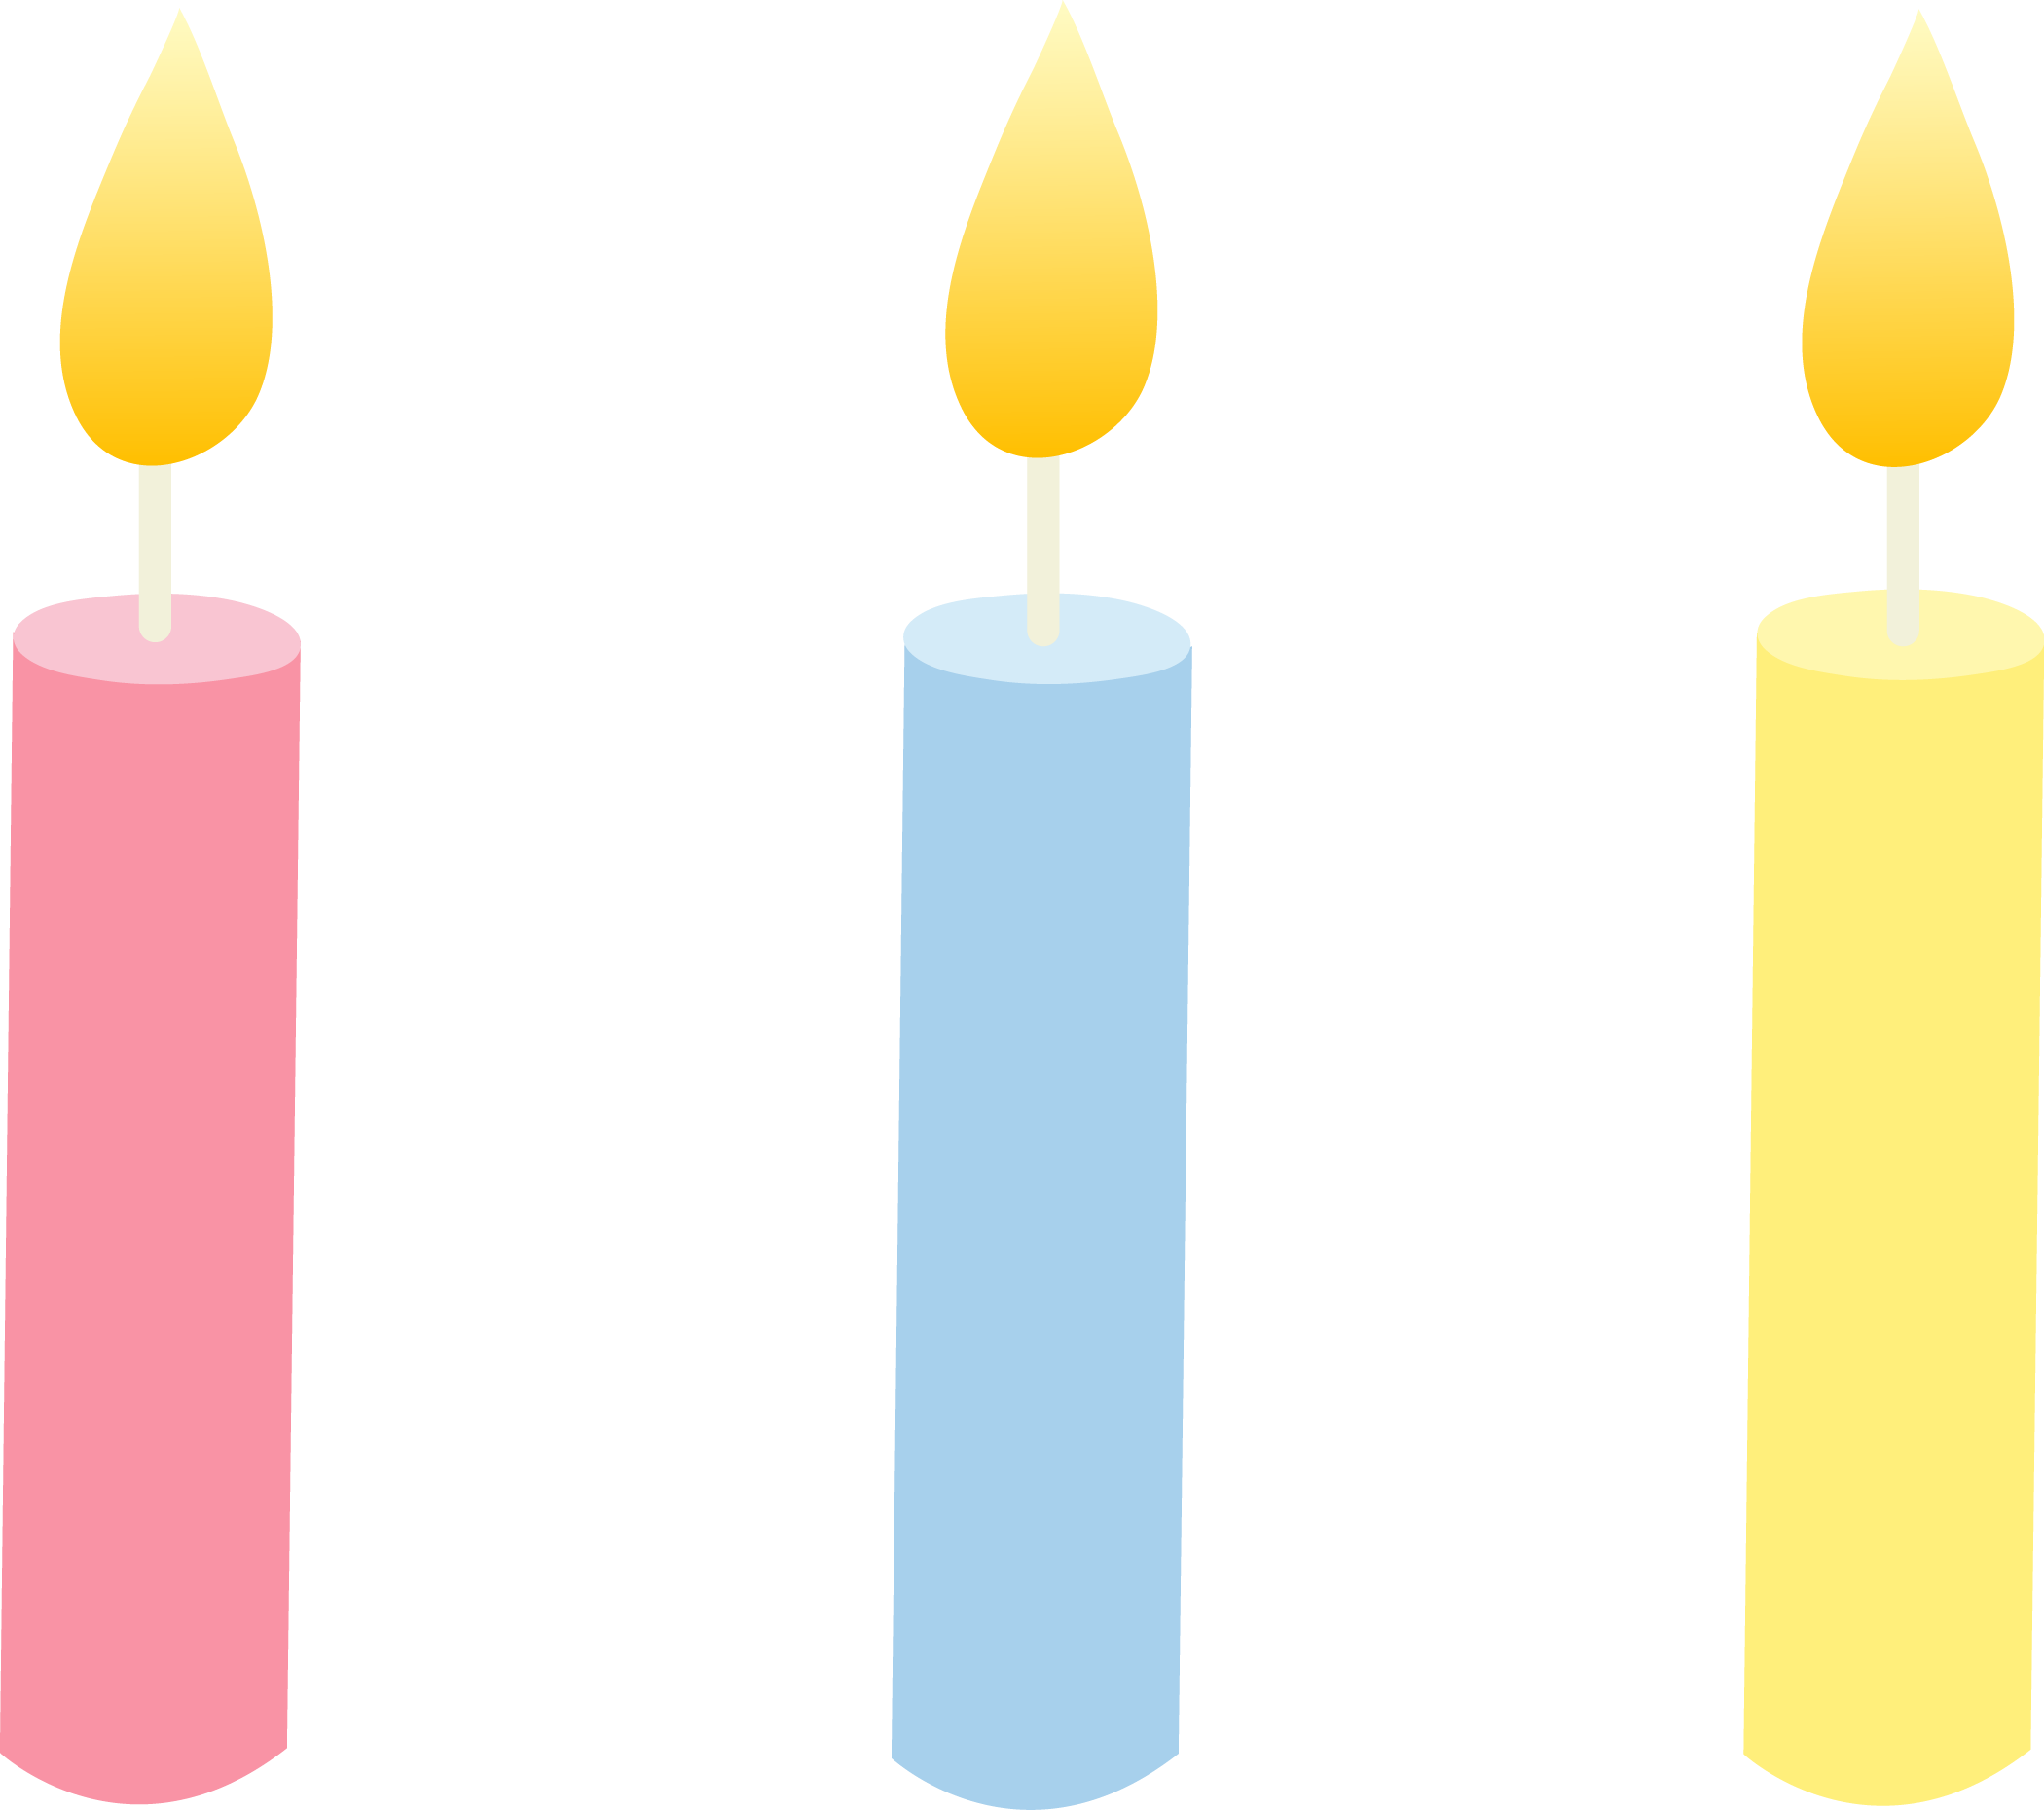 Three Pastel Colored Birthday - Birthday Candle Clipart